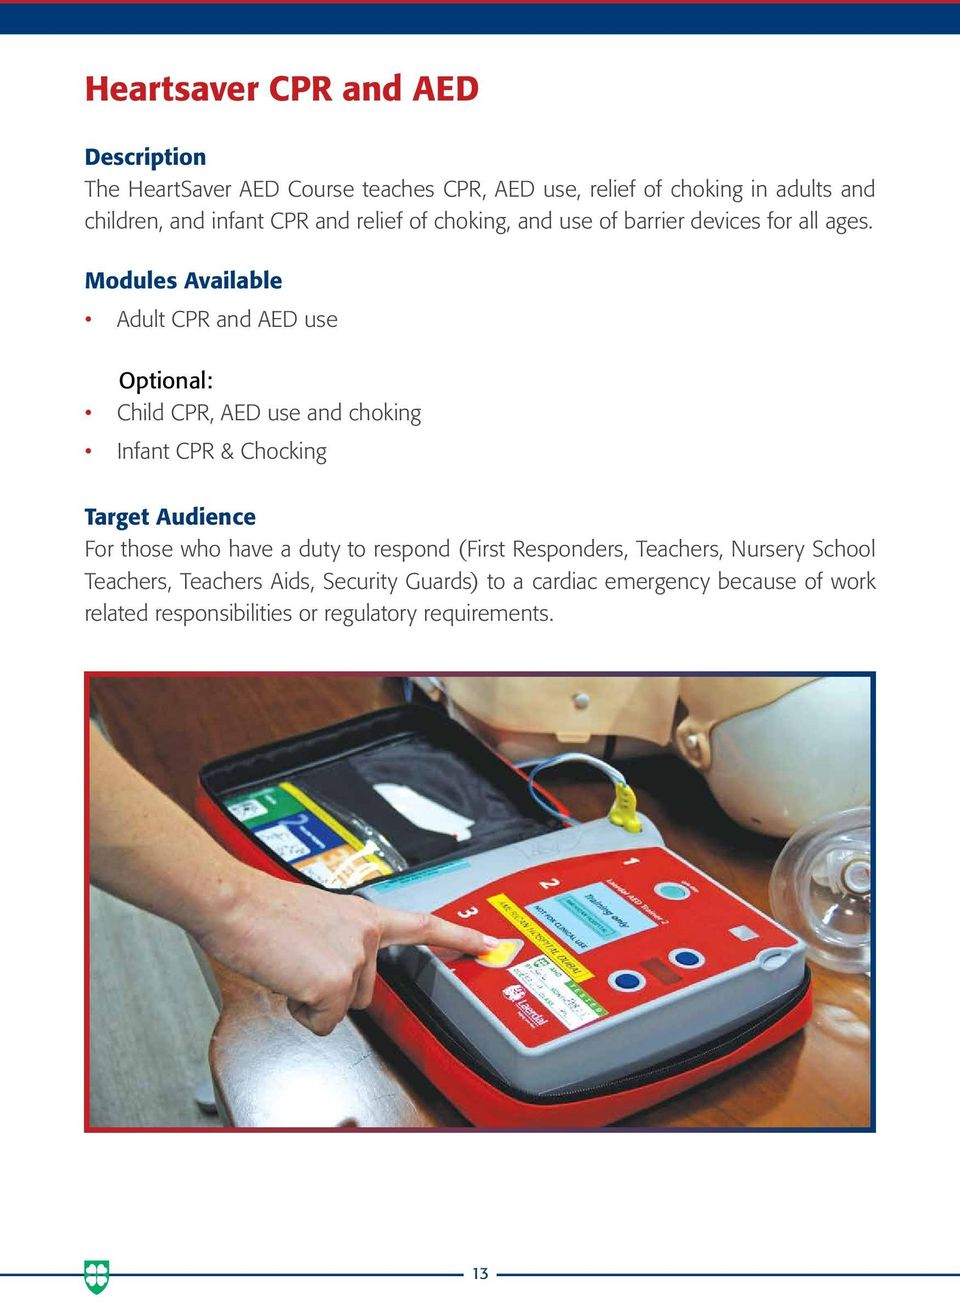 Modules Available Adult CPR and AED use Optional: Child CPR, AED use and choking Infant CPR & Chocking Target Audience For those who